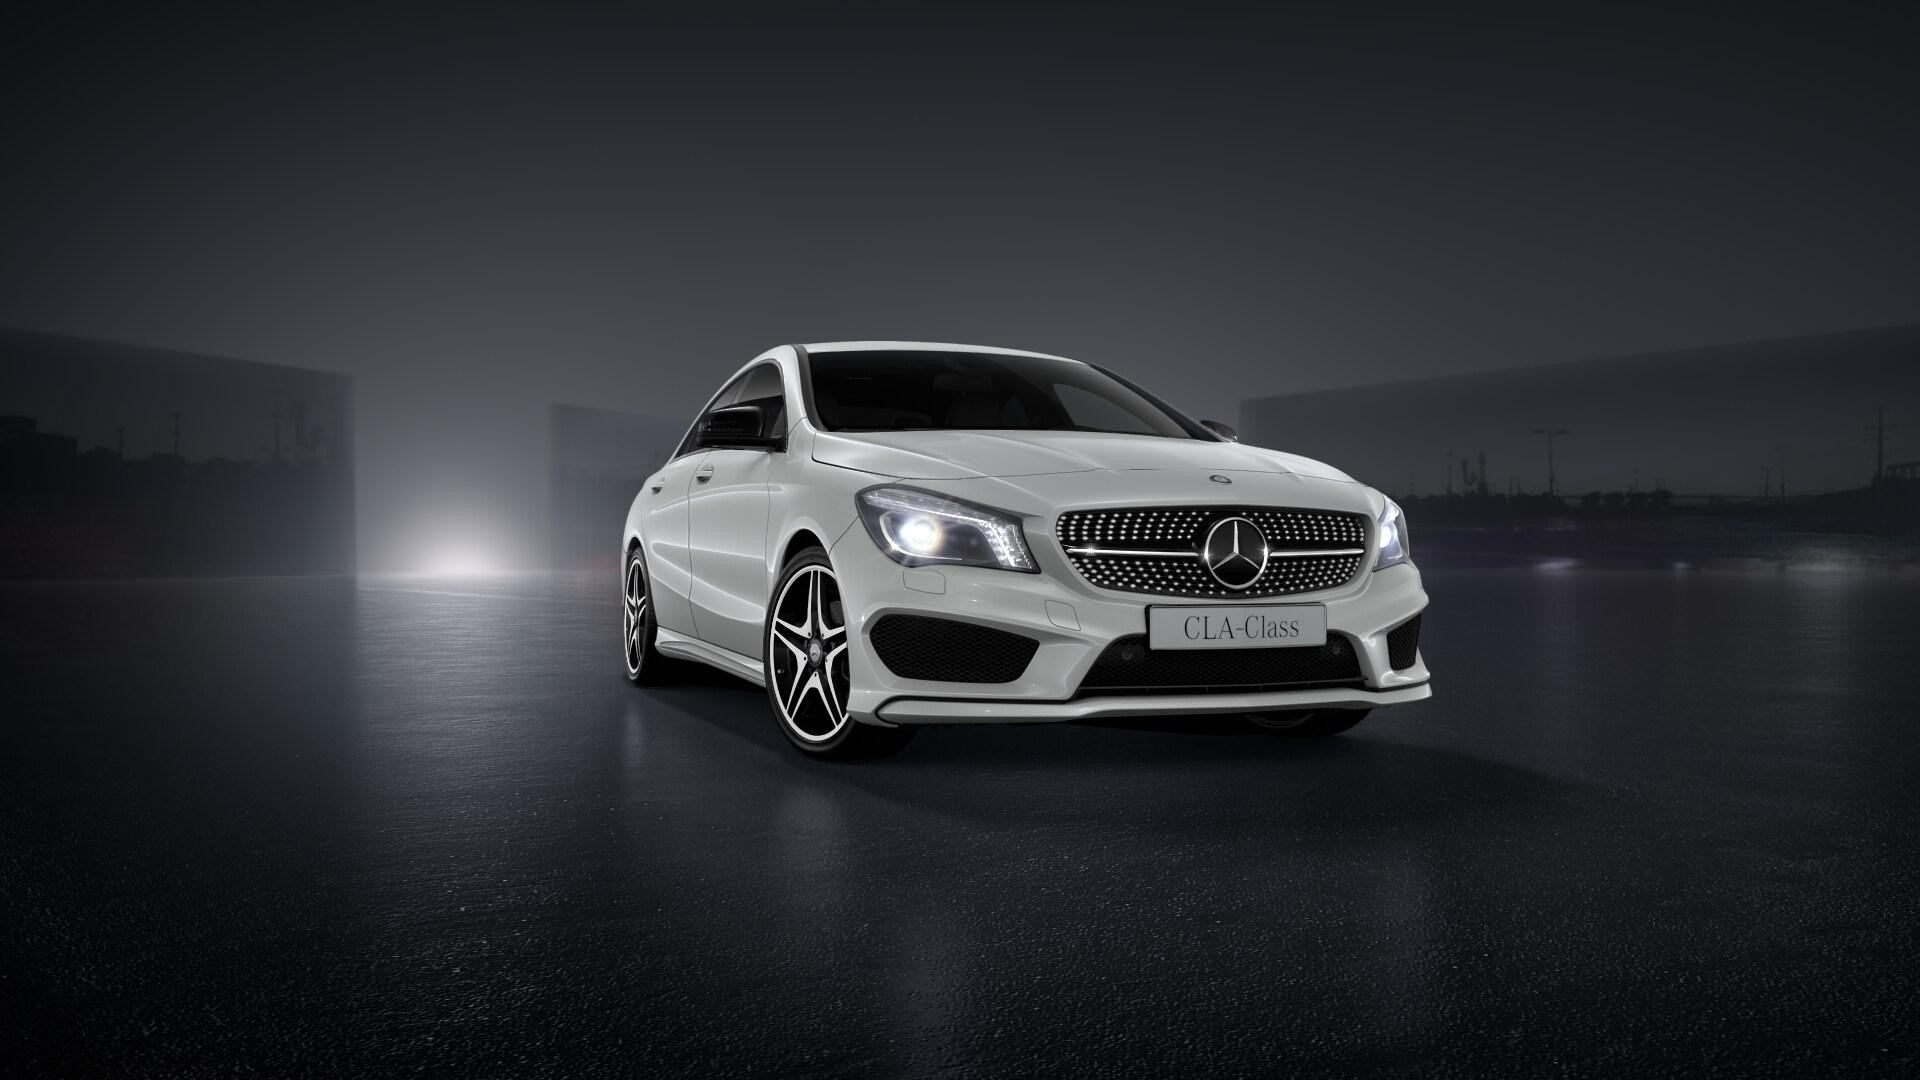 Cars AMG white cars Mercedes Benz auto CLA cla 200 wallpaper 1920x1080